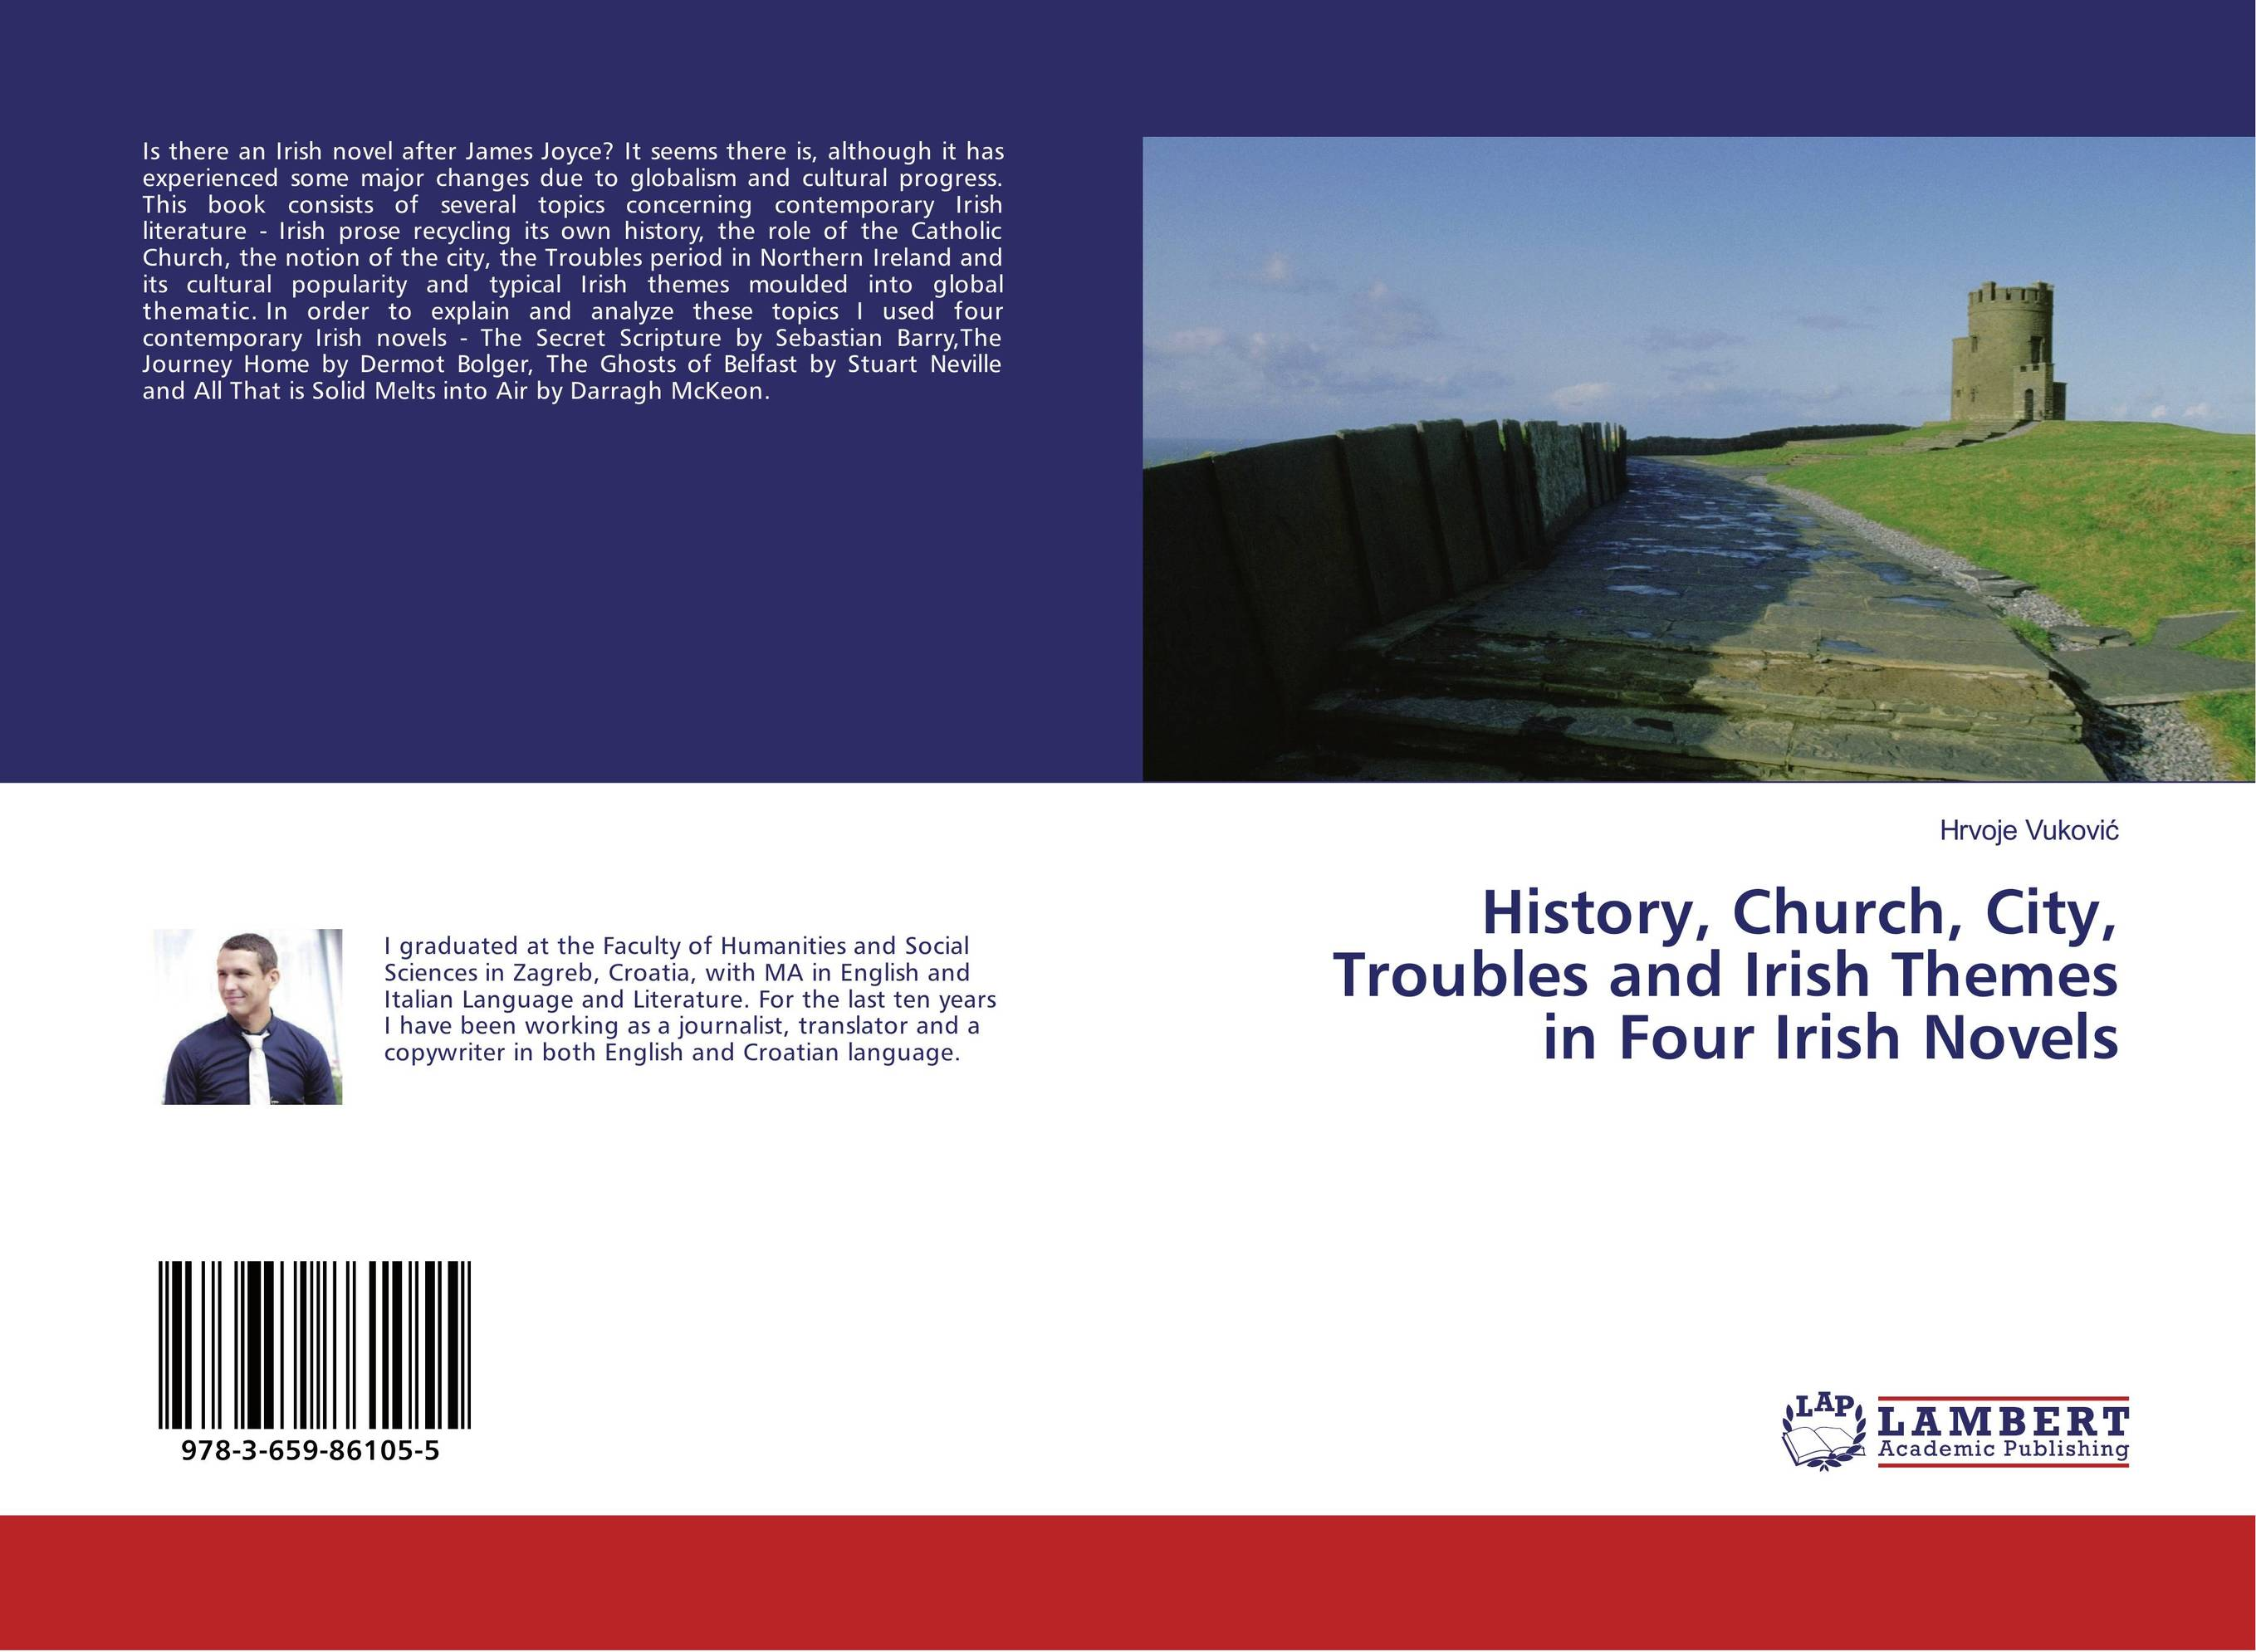 History, Church, City, Troubles and Irish Themes in Four Irish Novels императрица елизавета петровна